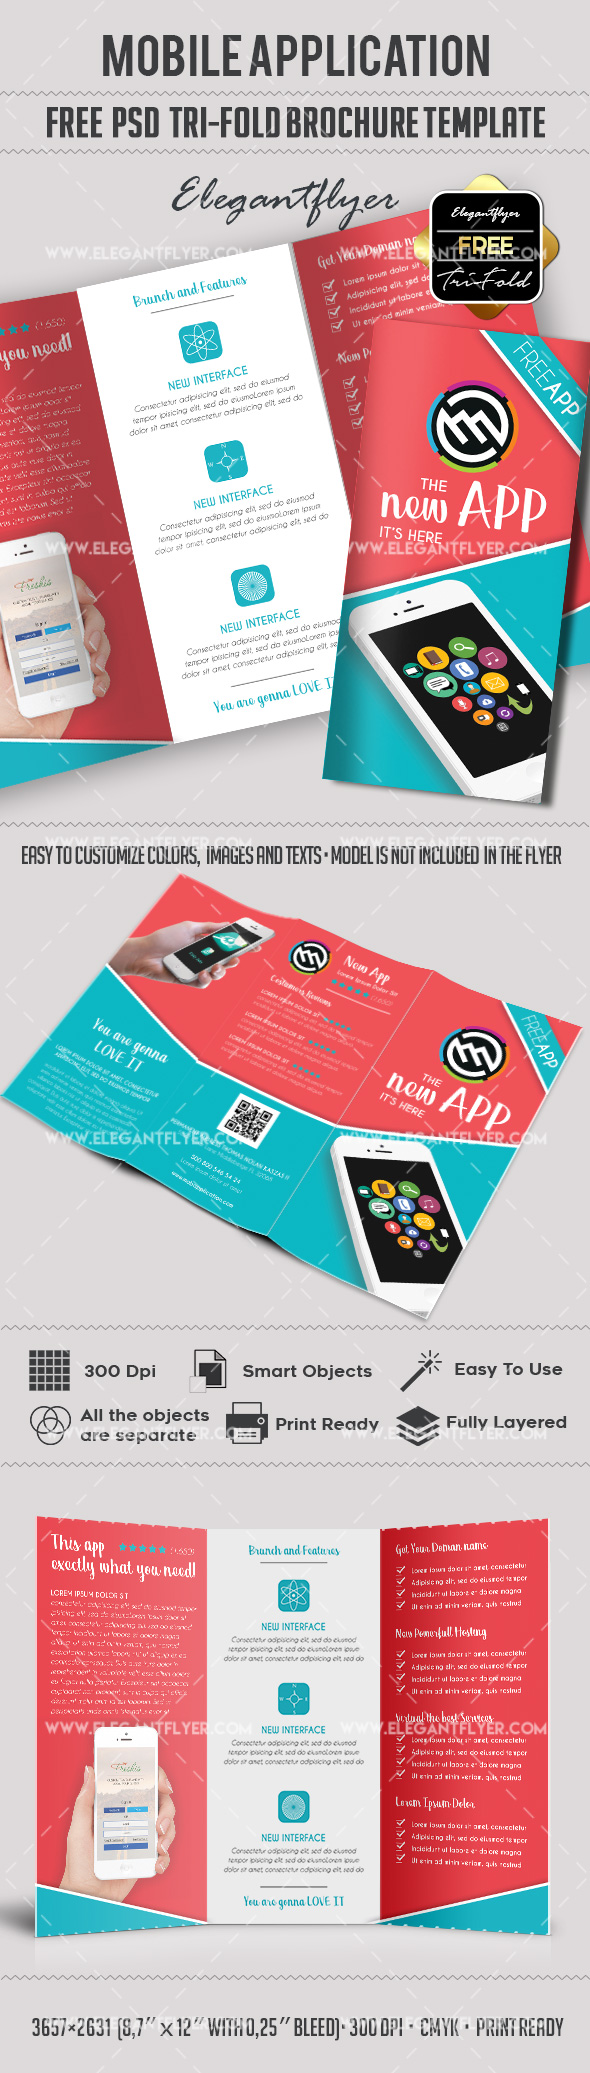 Free mobile application tri fold psd brochure by for Free template for brochure tri fold